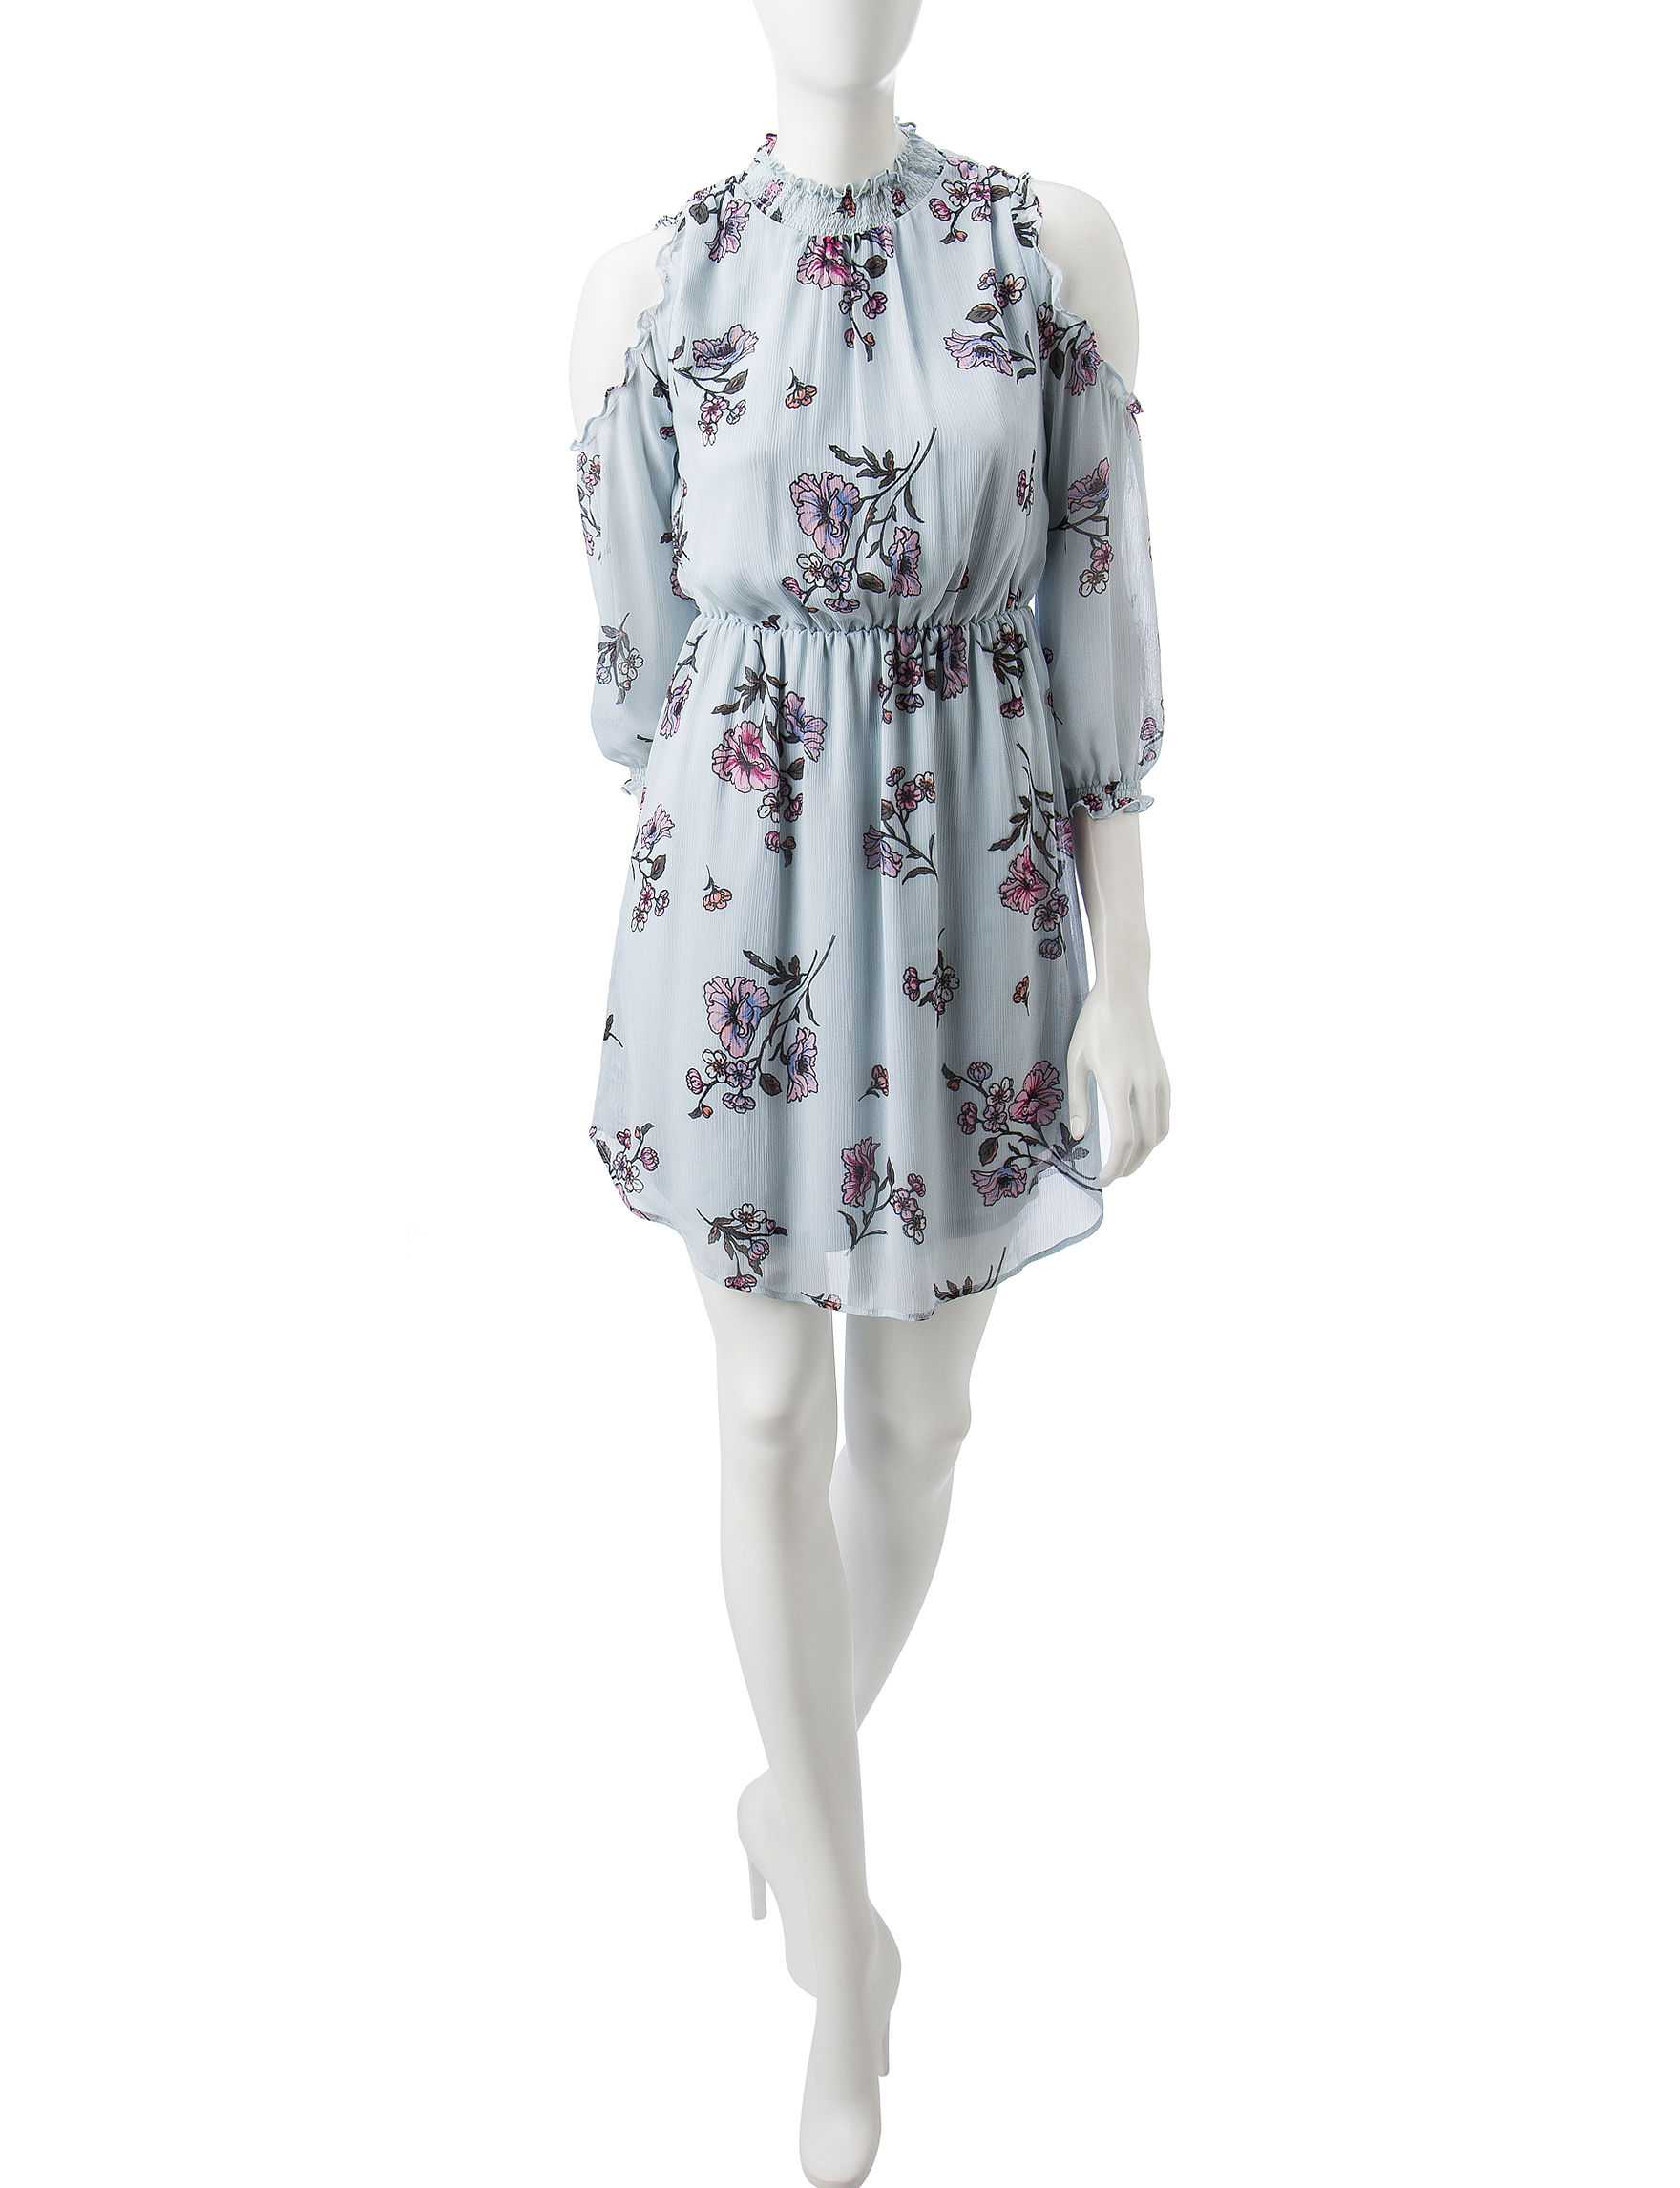 Signature Studio Floral Everyday & Casual Fit & Flare Dresses